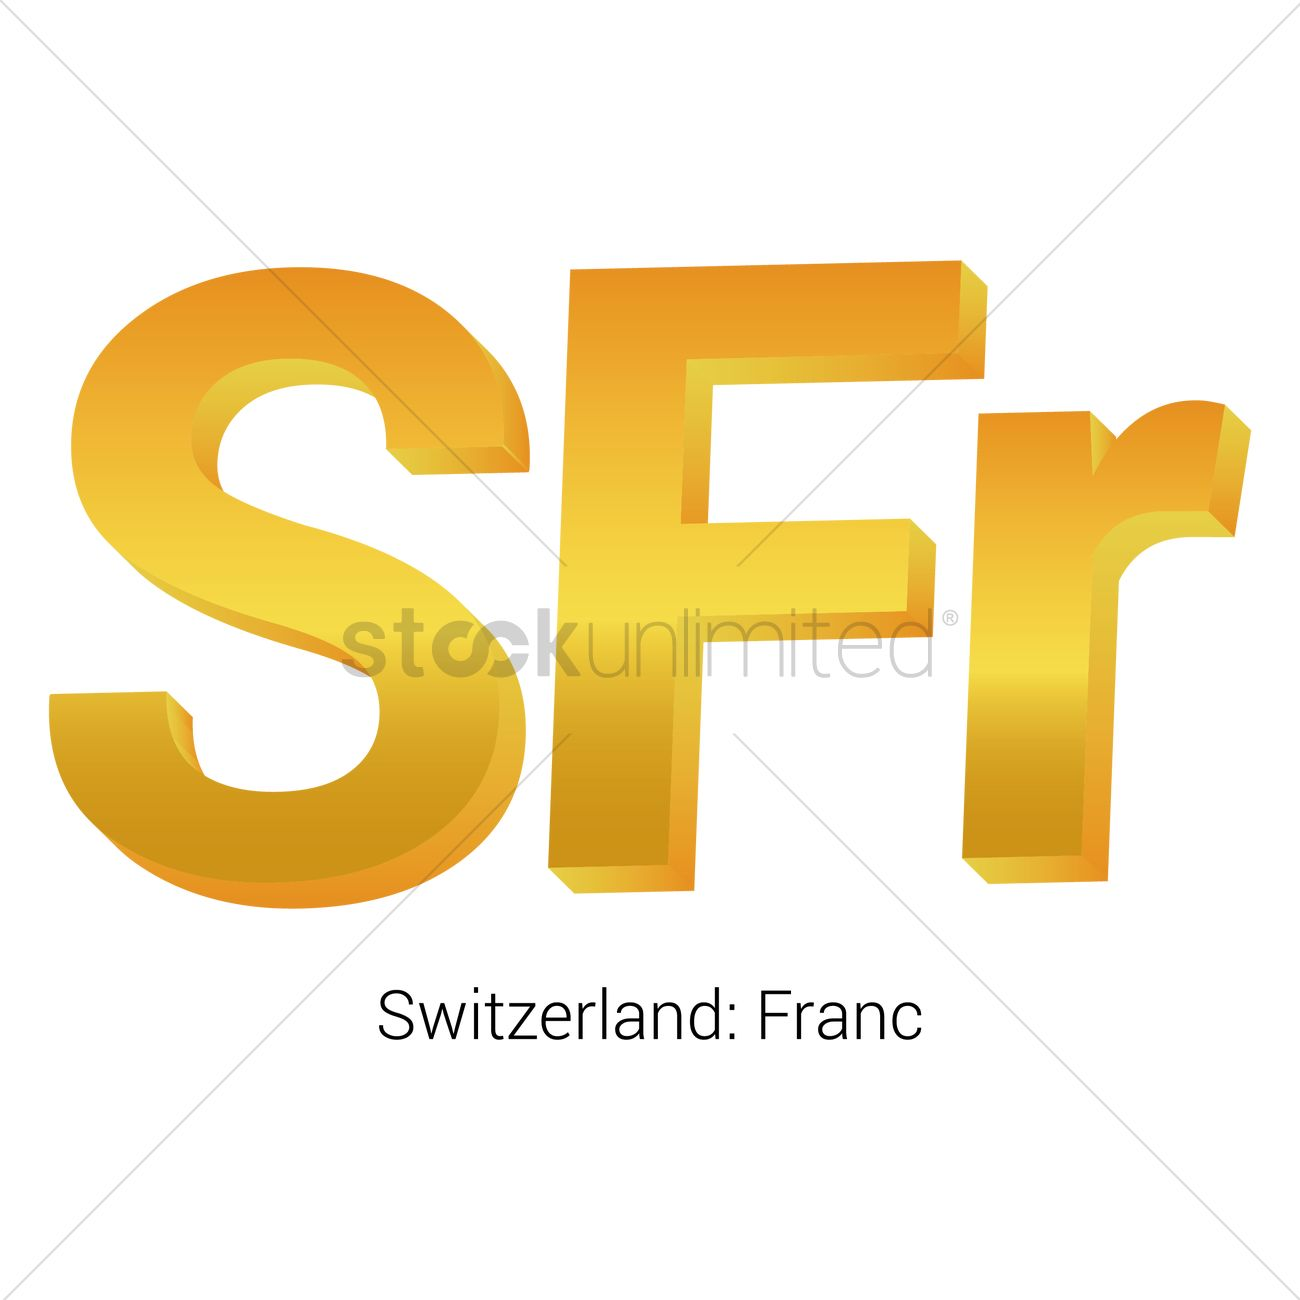 Franc Currency Symbol Vector Image 1821563 Stockunlimited